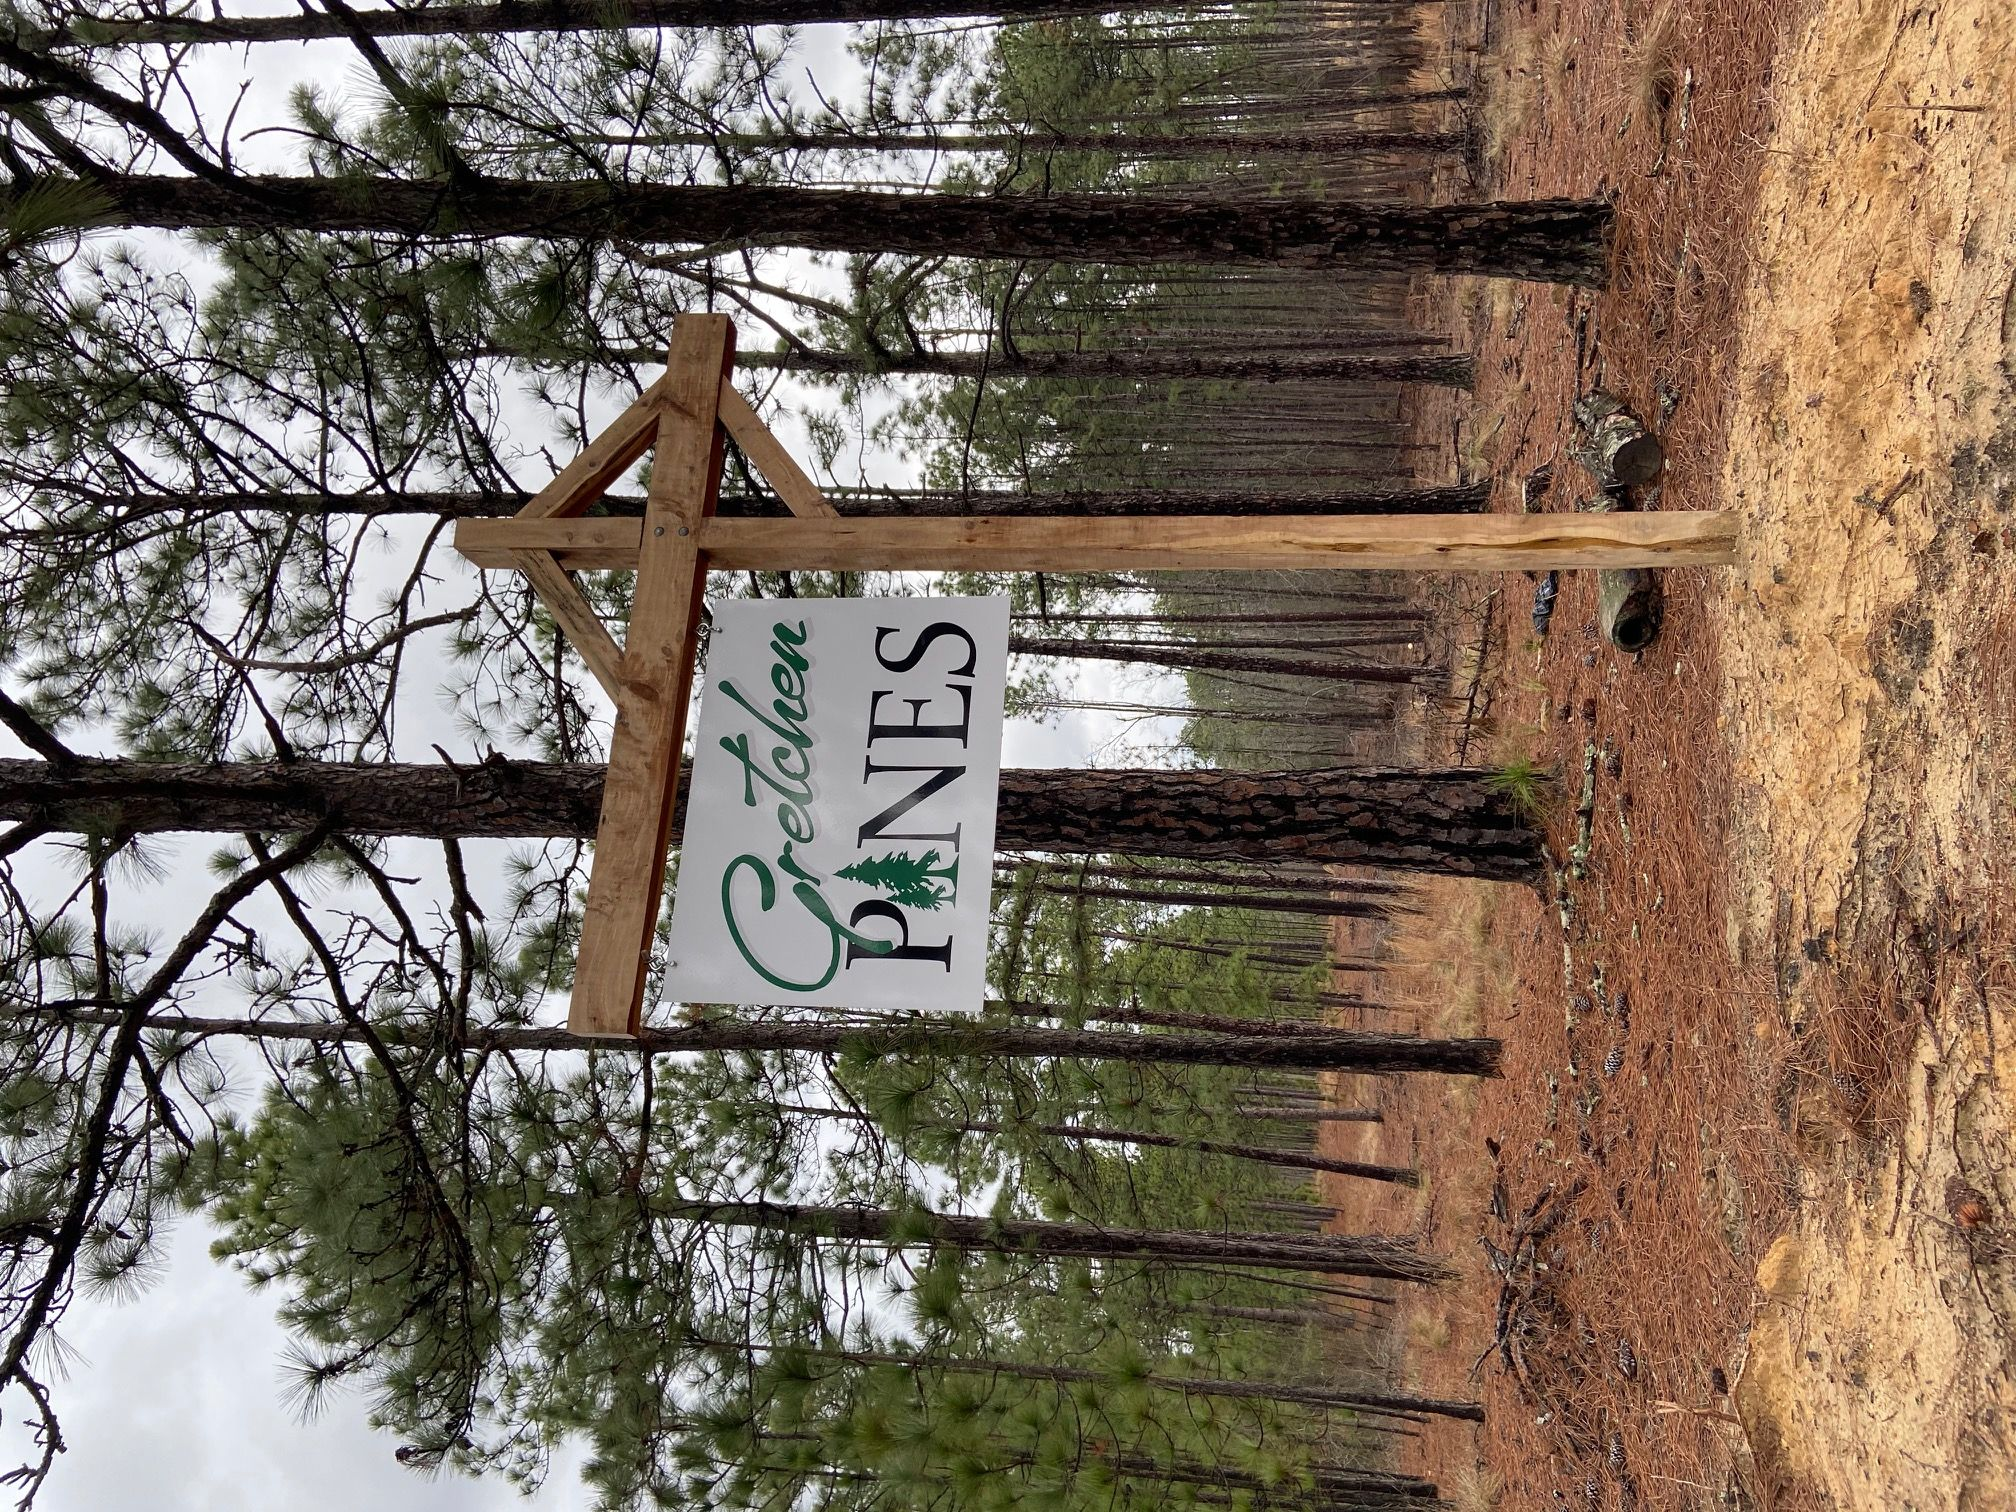 'Gretchen Pines' by Gretchen Pines in Pinehurst-Southern Pines